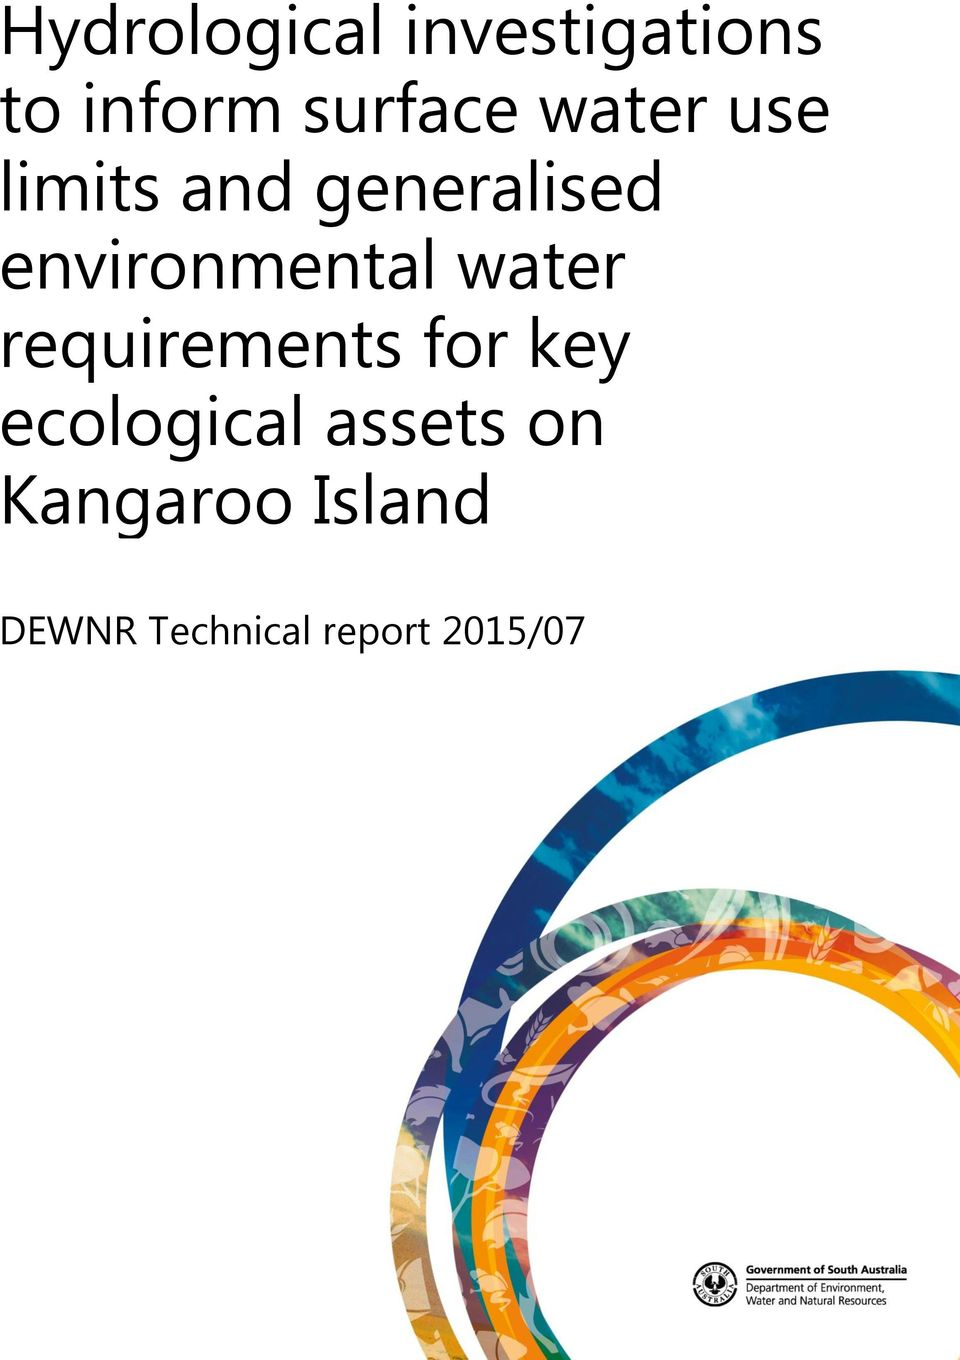 water requirements for key ecological assets